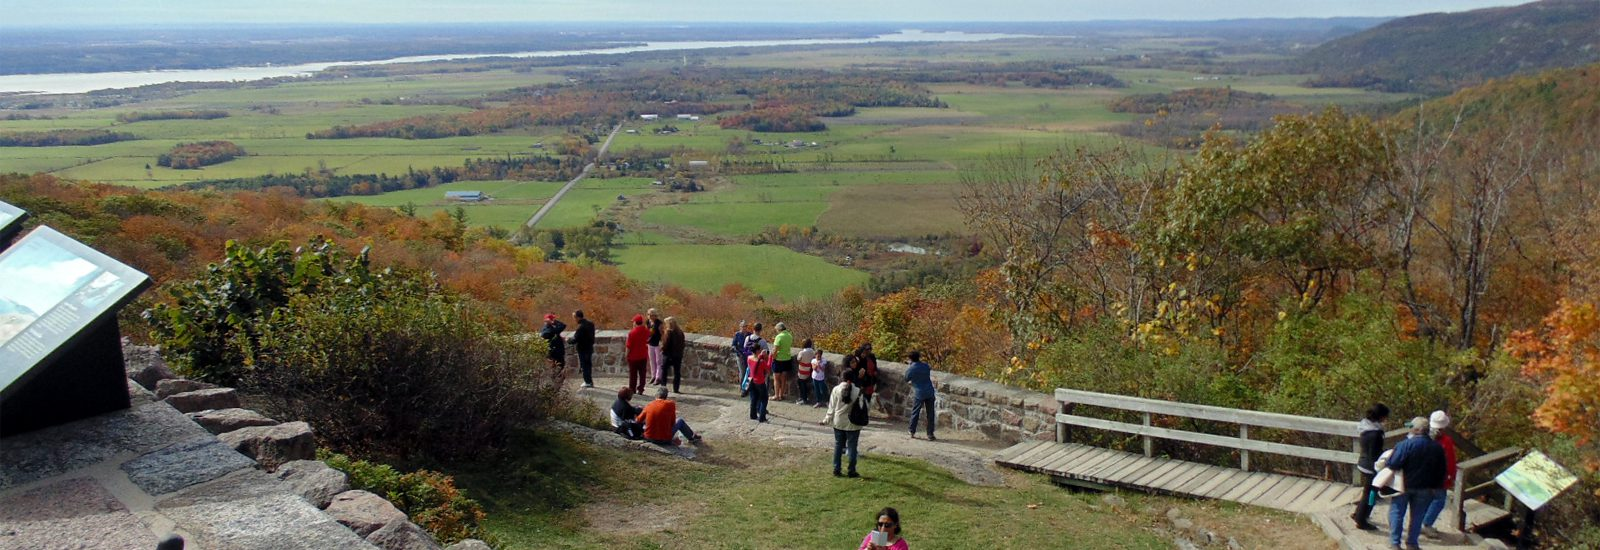 Belvedere Lookout in Gatineau Park, with view up the Ottawa Valley